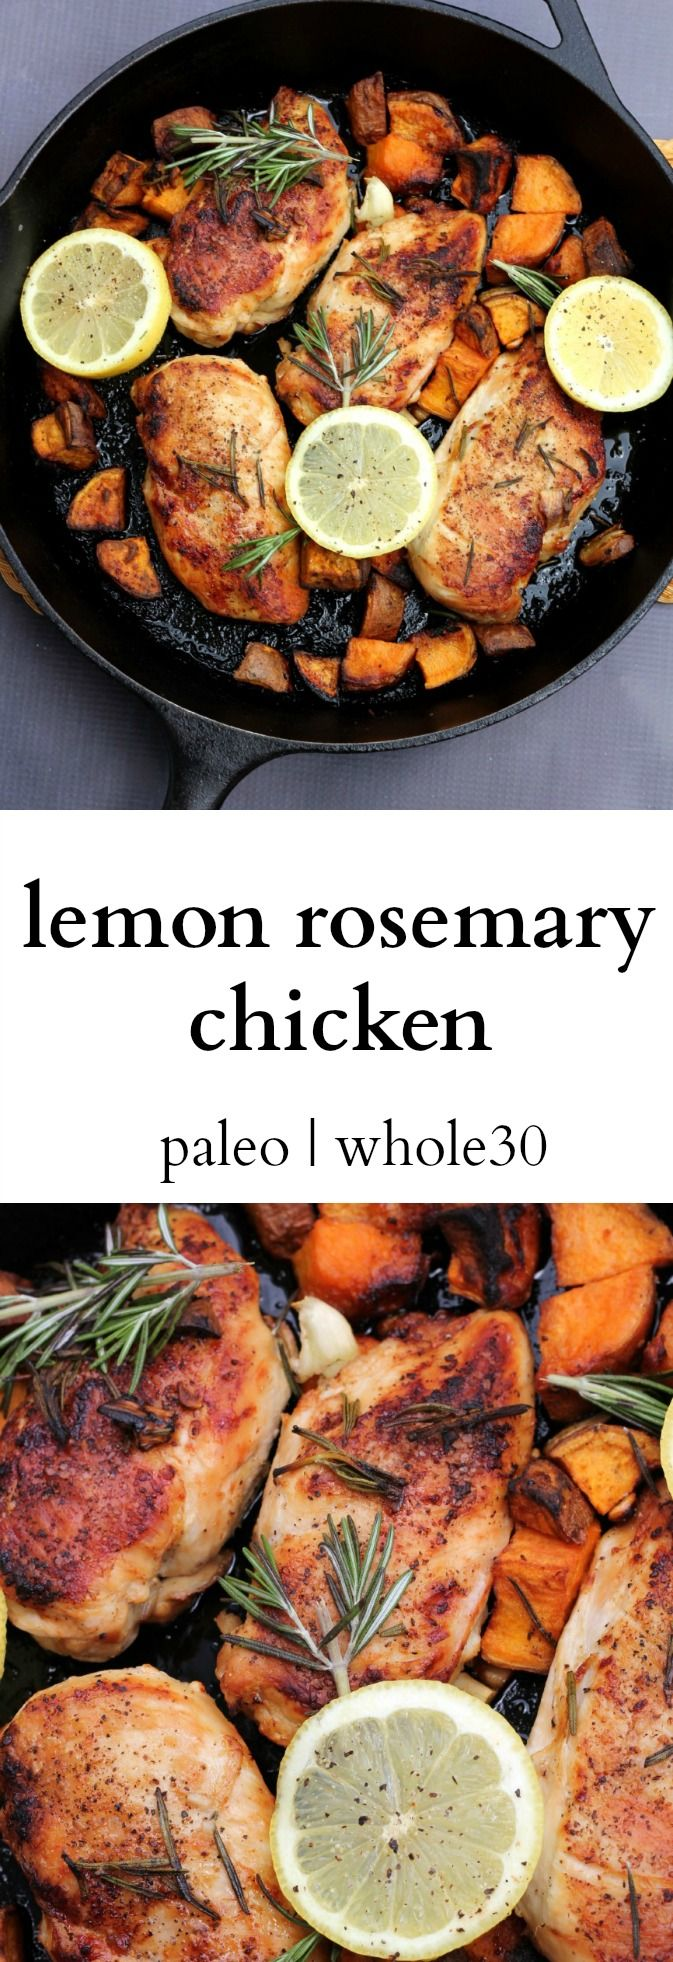 Wednesday The perfect one pan meal. This is a Paleo dinner and Whole30 dinner! Sure to satisfy everyone in the family.